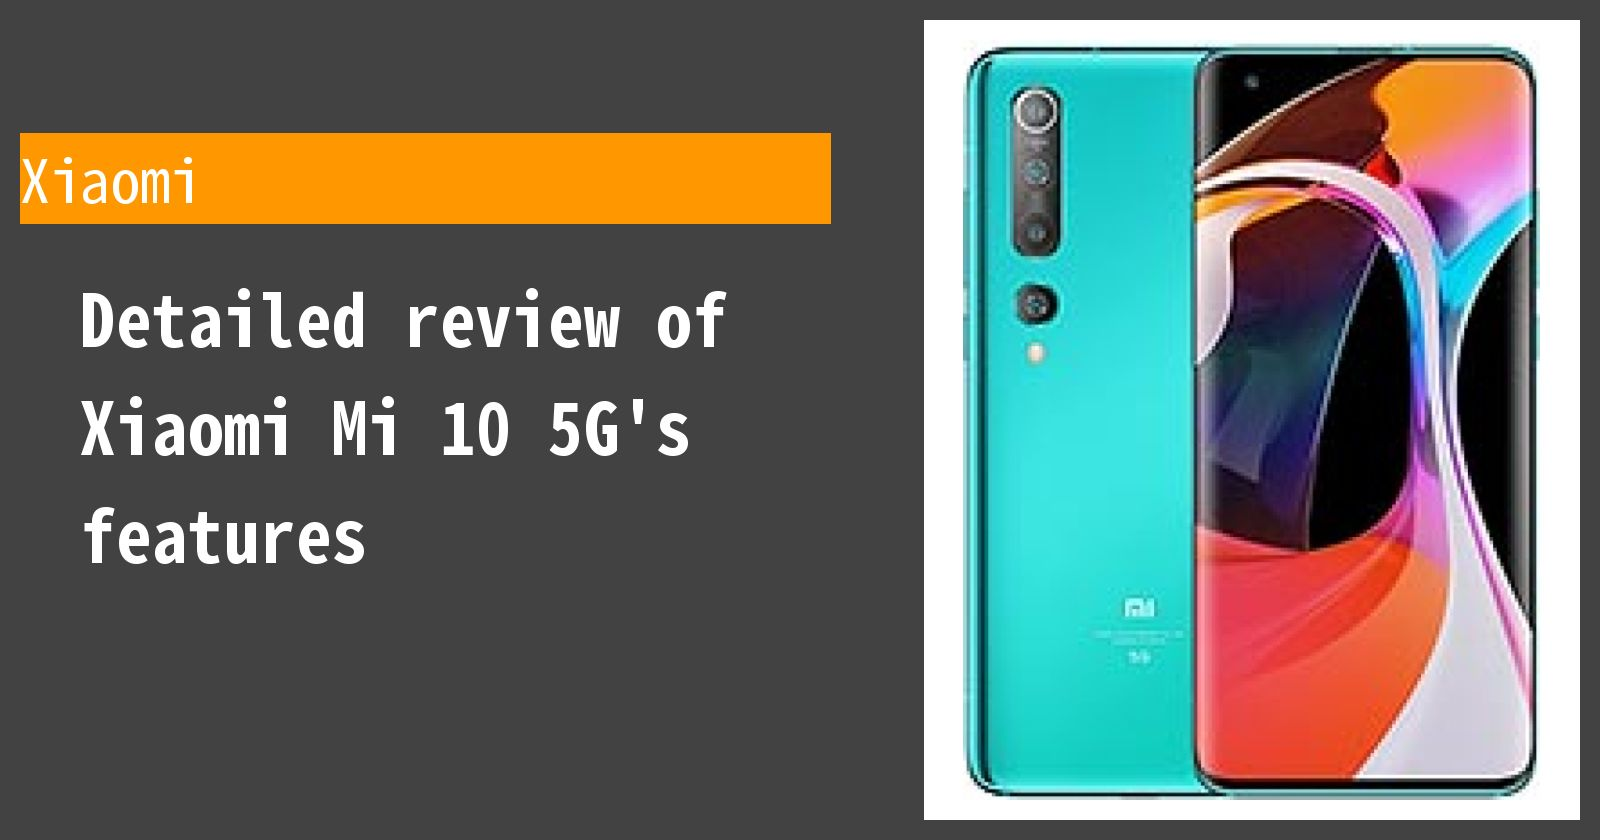 Detailed review of Xiaomi Mi 10 5G's features